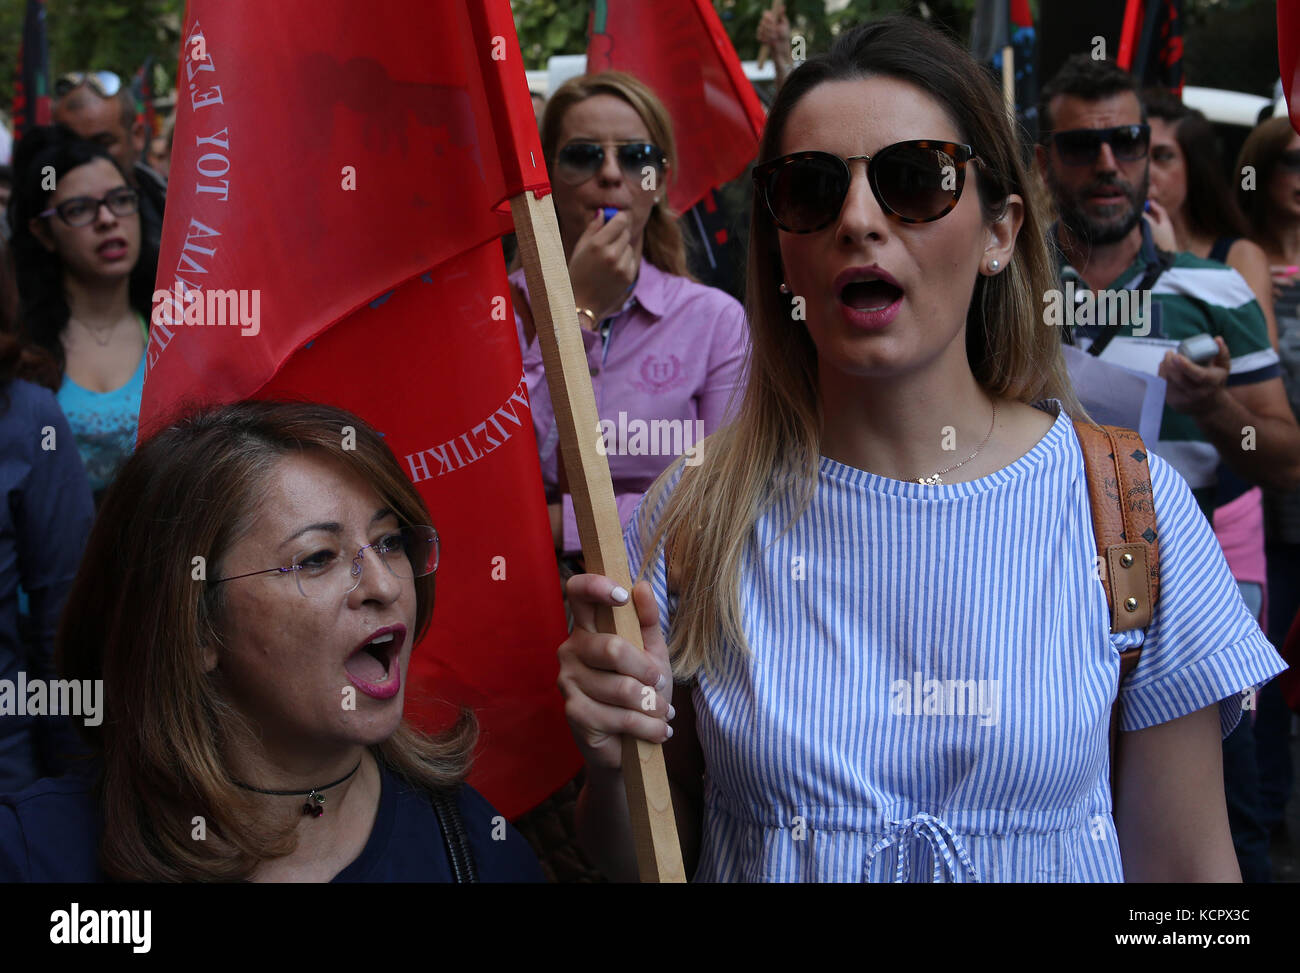 (171006) -- ATHENS, Oct. 6 (Xinhua) -- Greek state hospital nurses participate during a 24-hour strike and demonstration - Stock Image